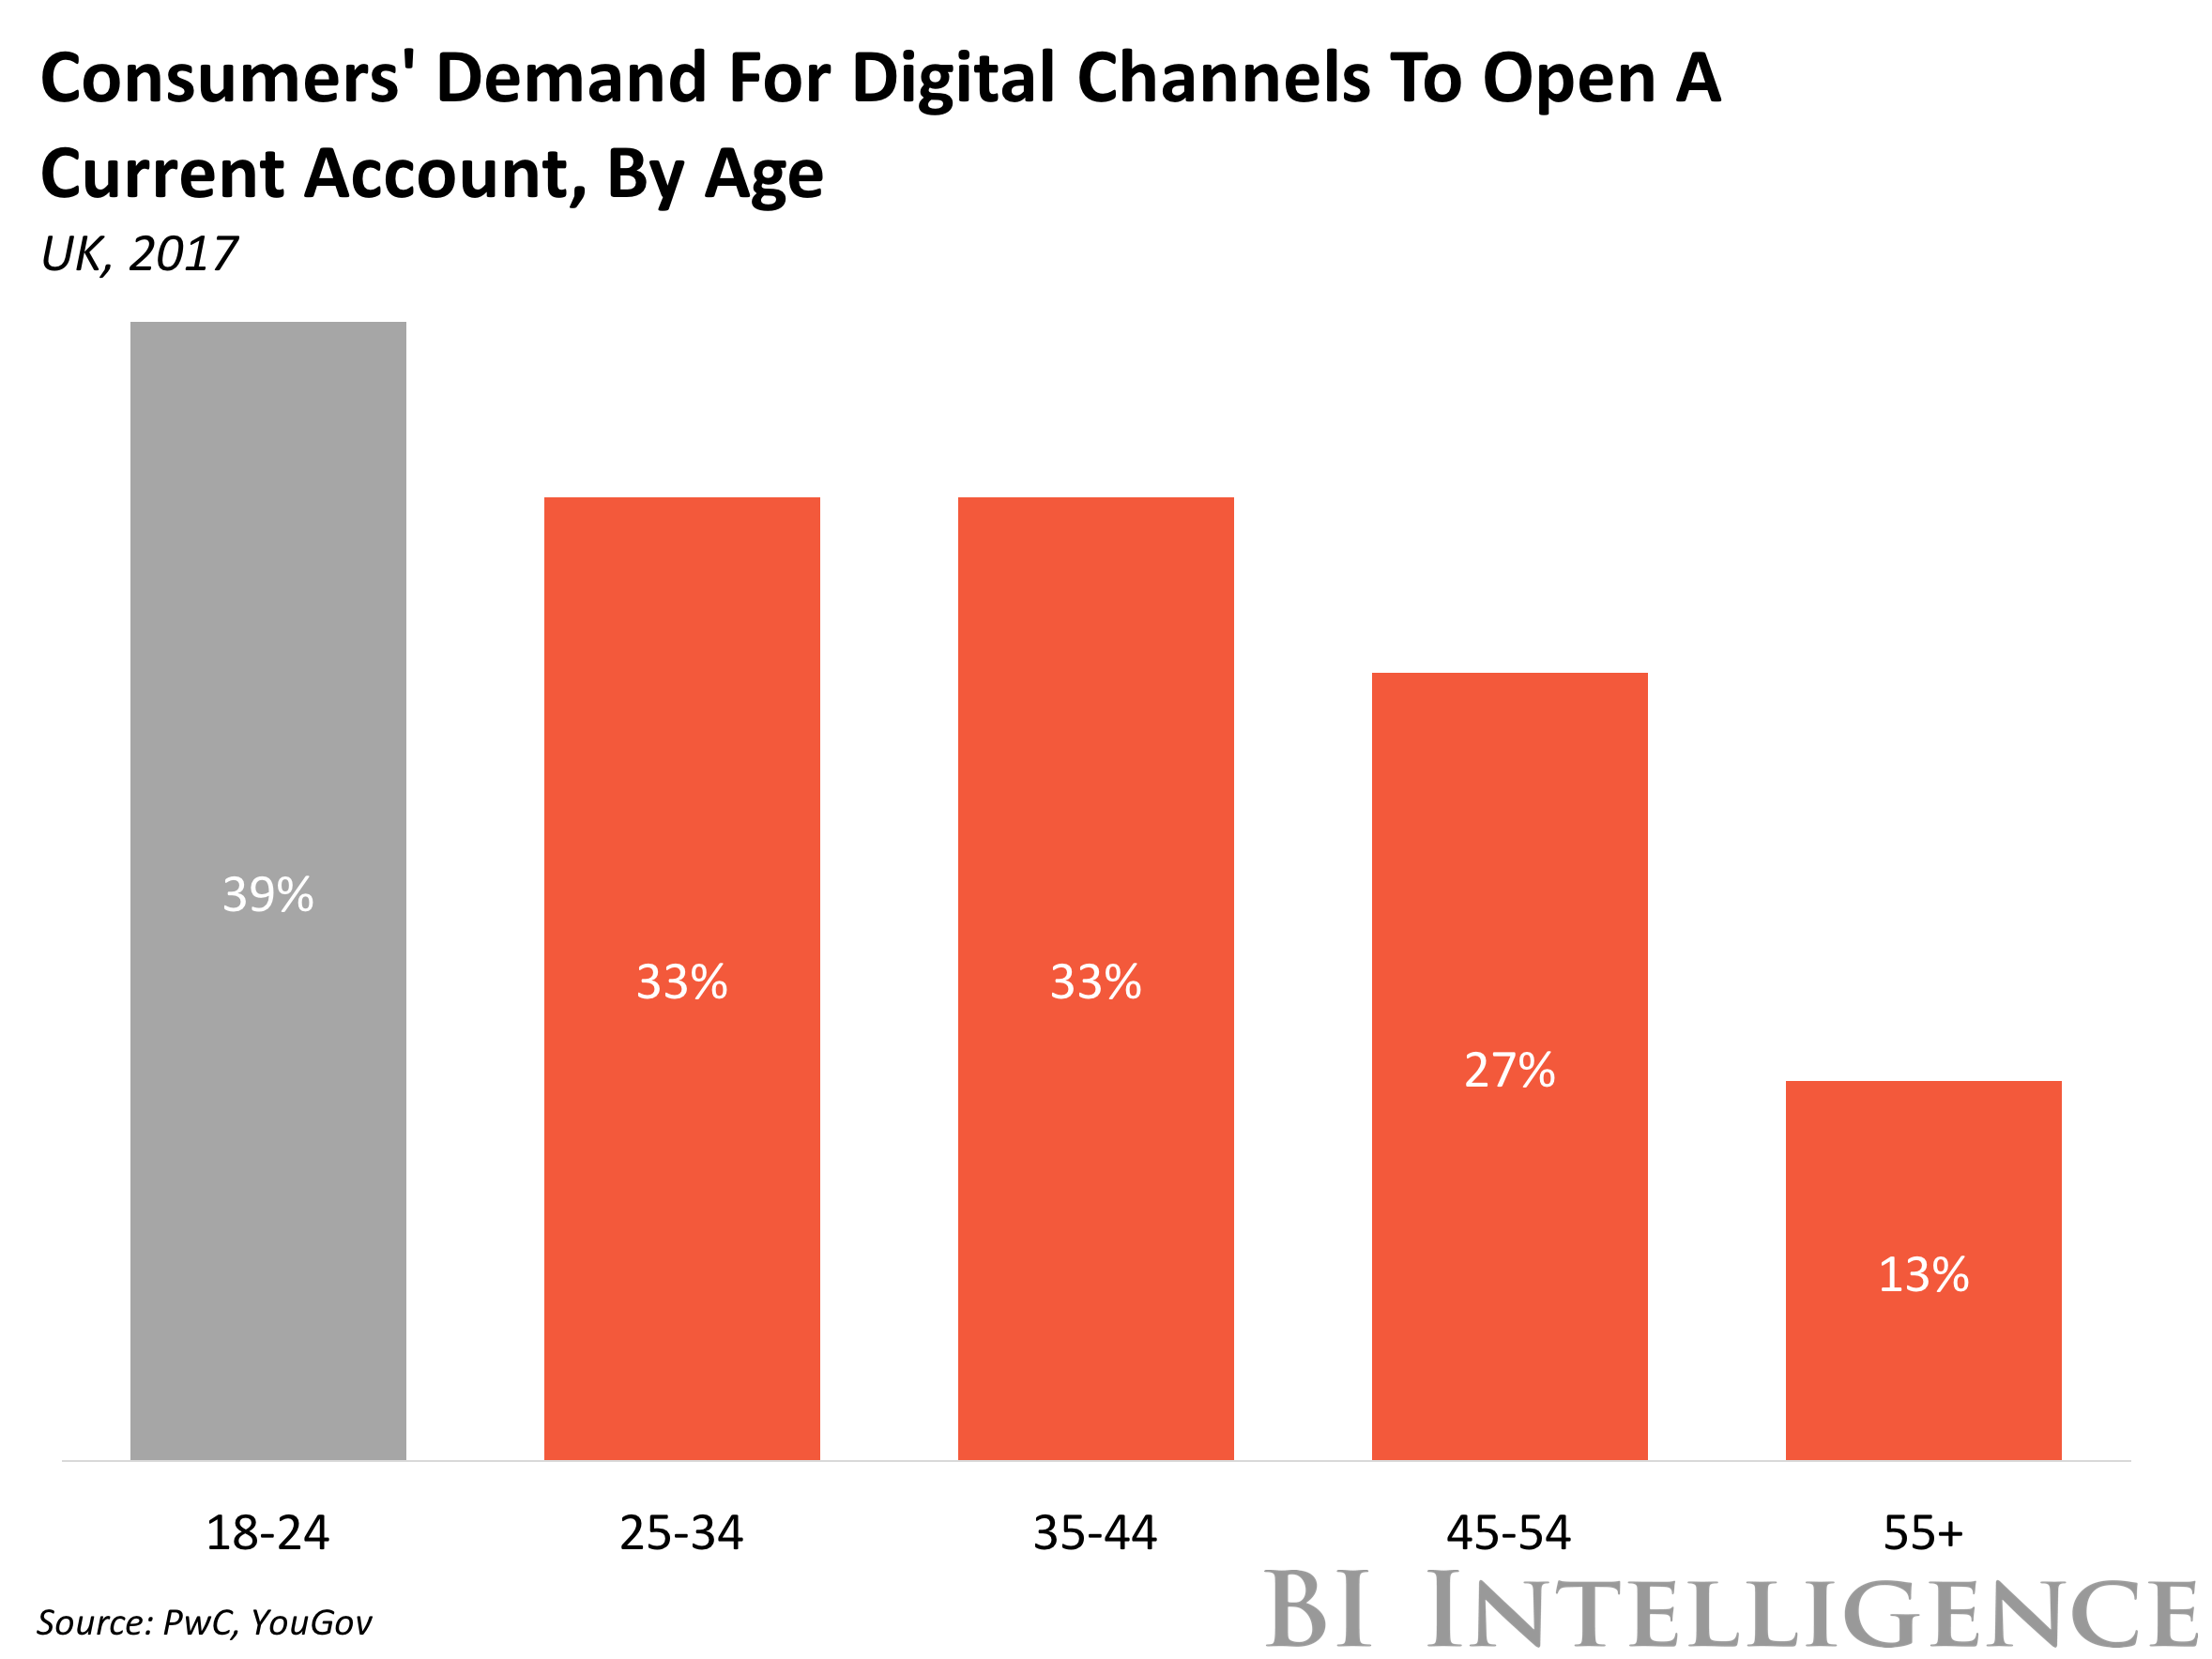 Consumer Demand for Digital Channels